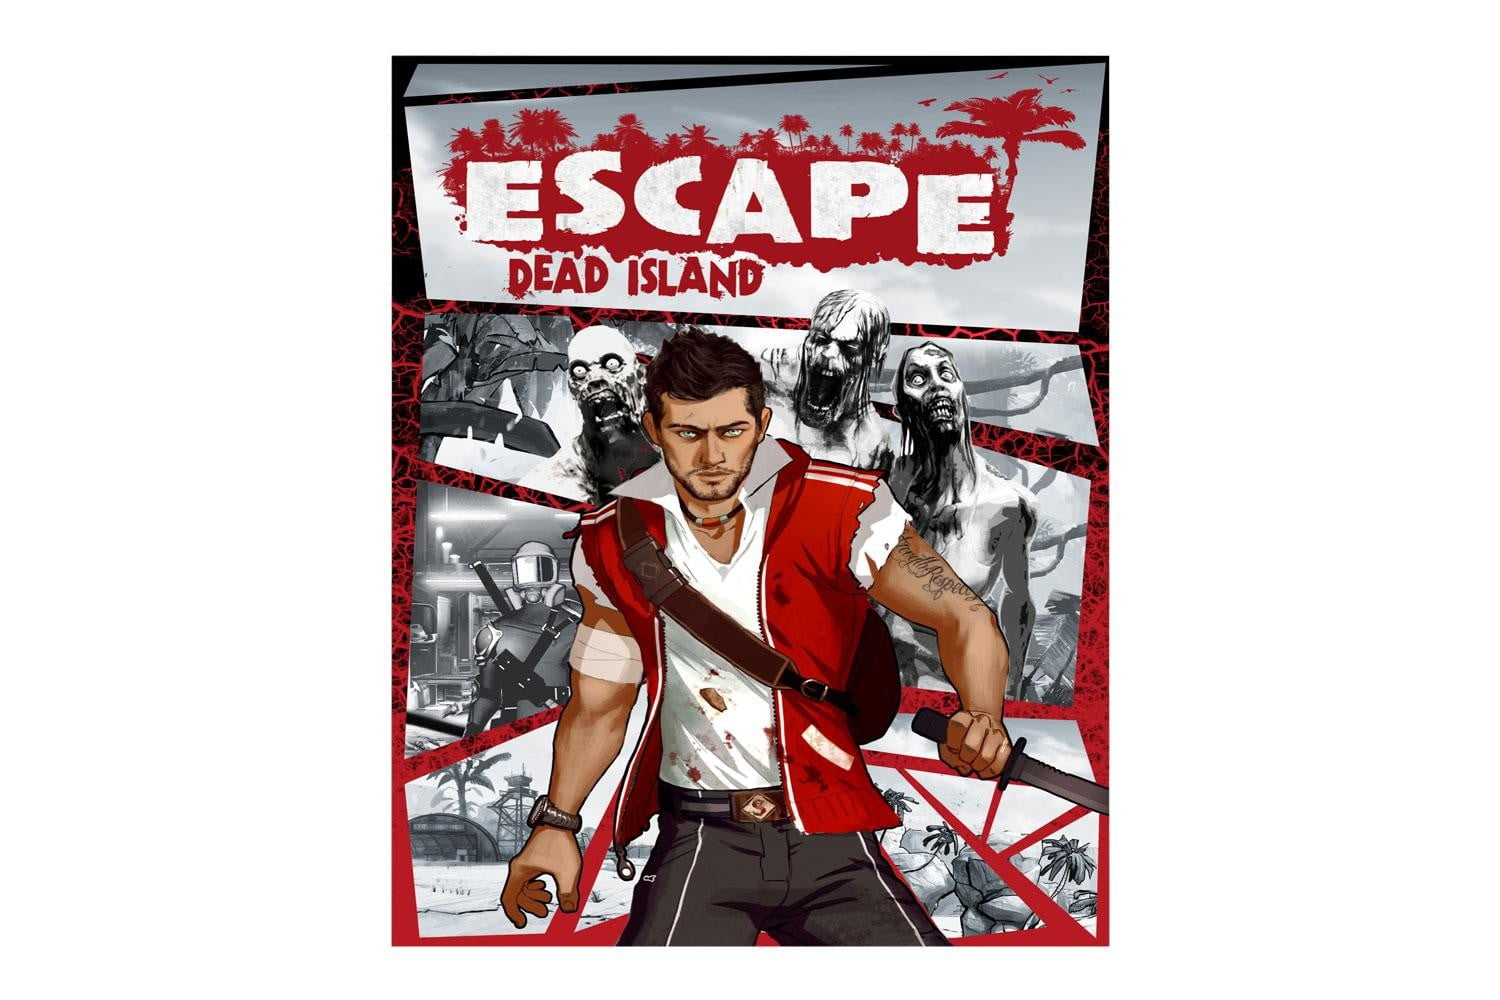 Escape-Dead-Island-cover-art